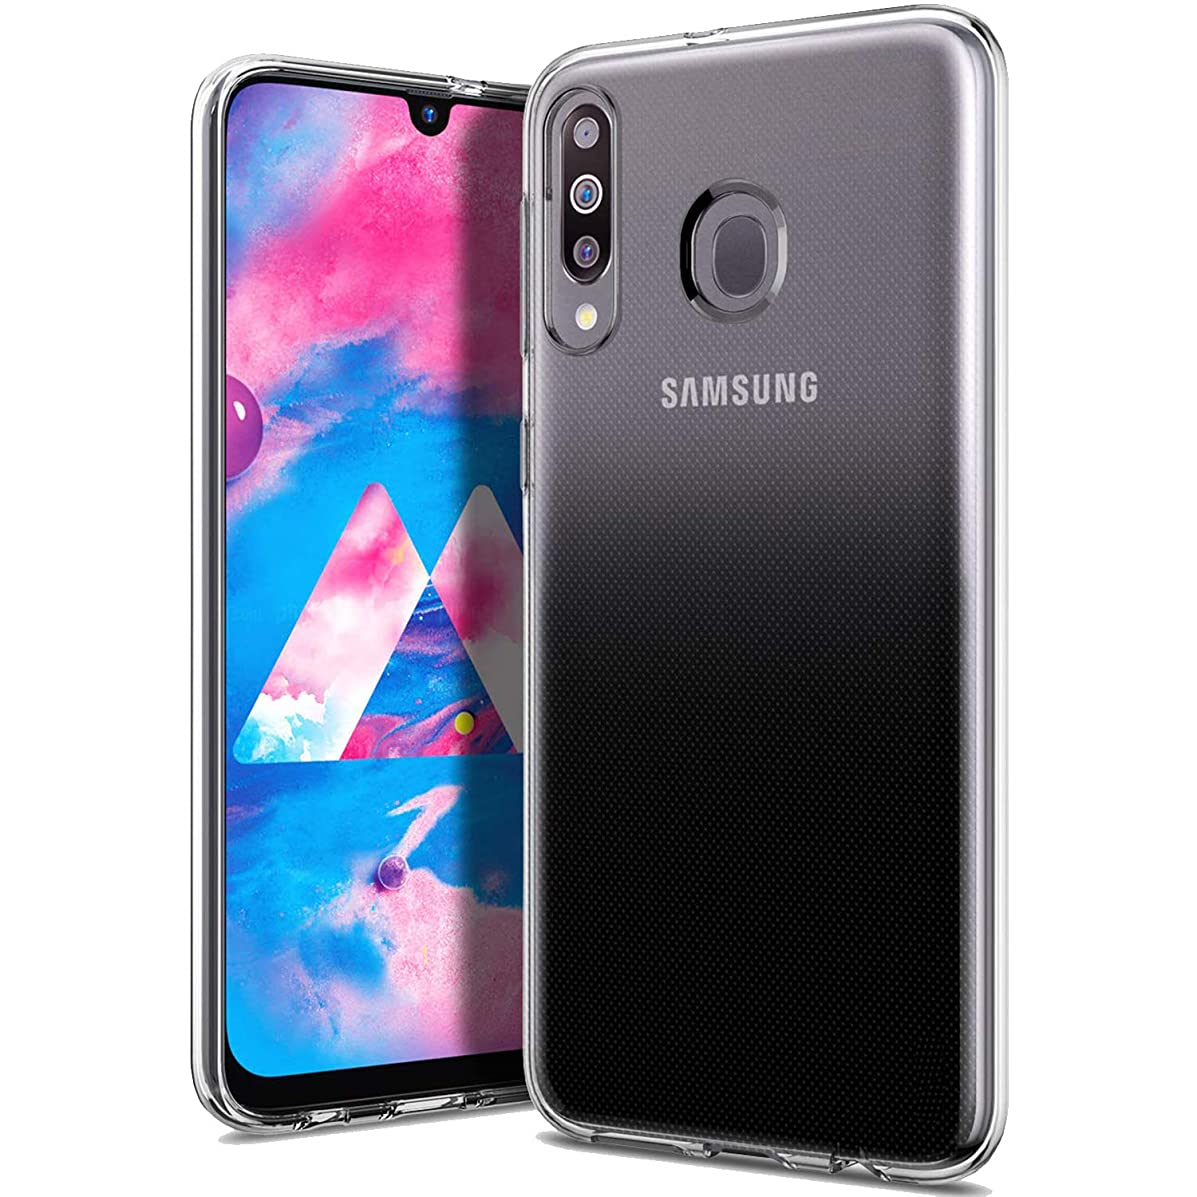 Olixar for Samsung Galaxy M30 Clear Case - Slim Gel TPU Thin Soft - Protective Clear Case Cover for Galaxy M30 - Ultra Clear